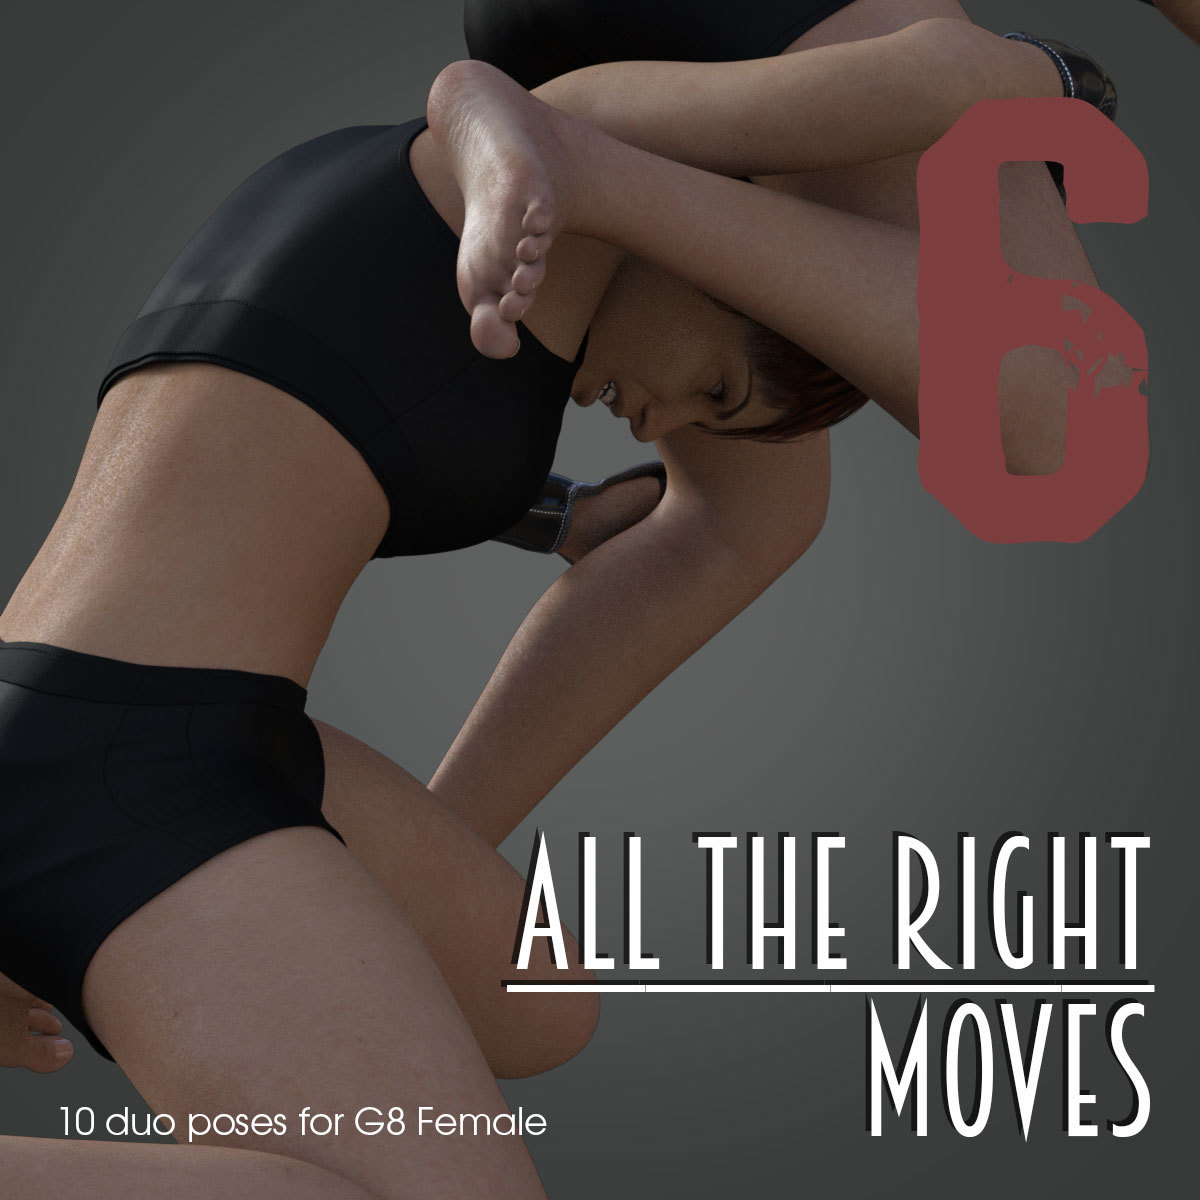 ALL THE RIGHT MOVES vol.6 for Genesis 8 Female by PainMD